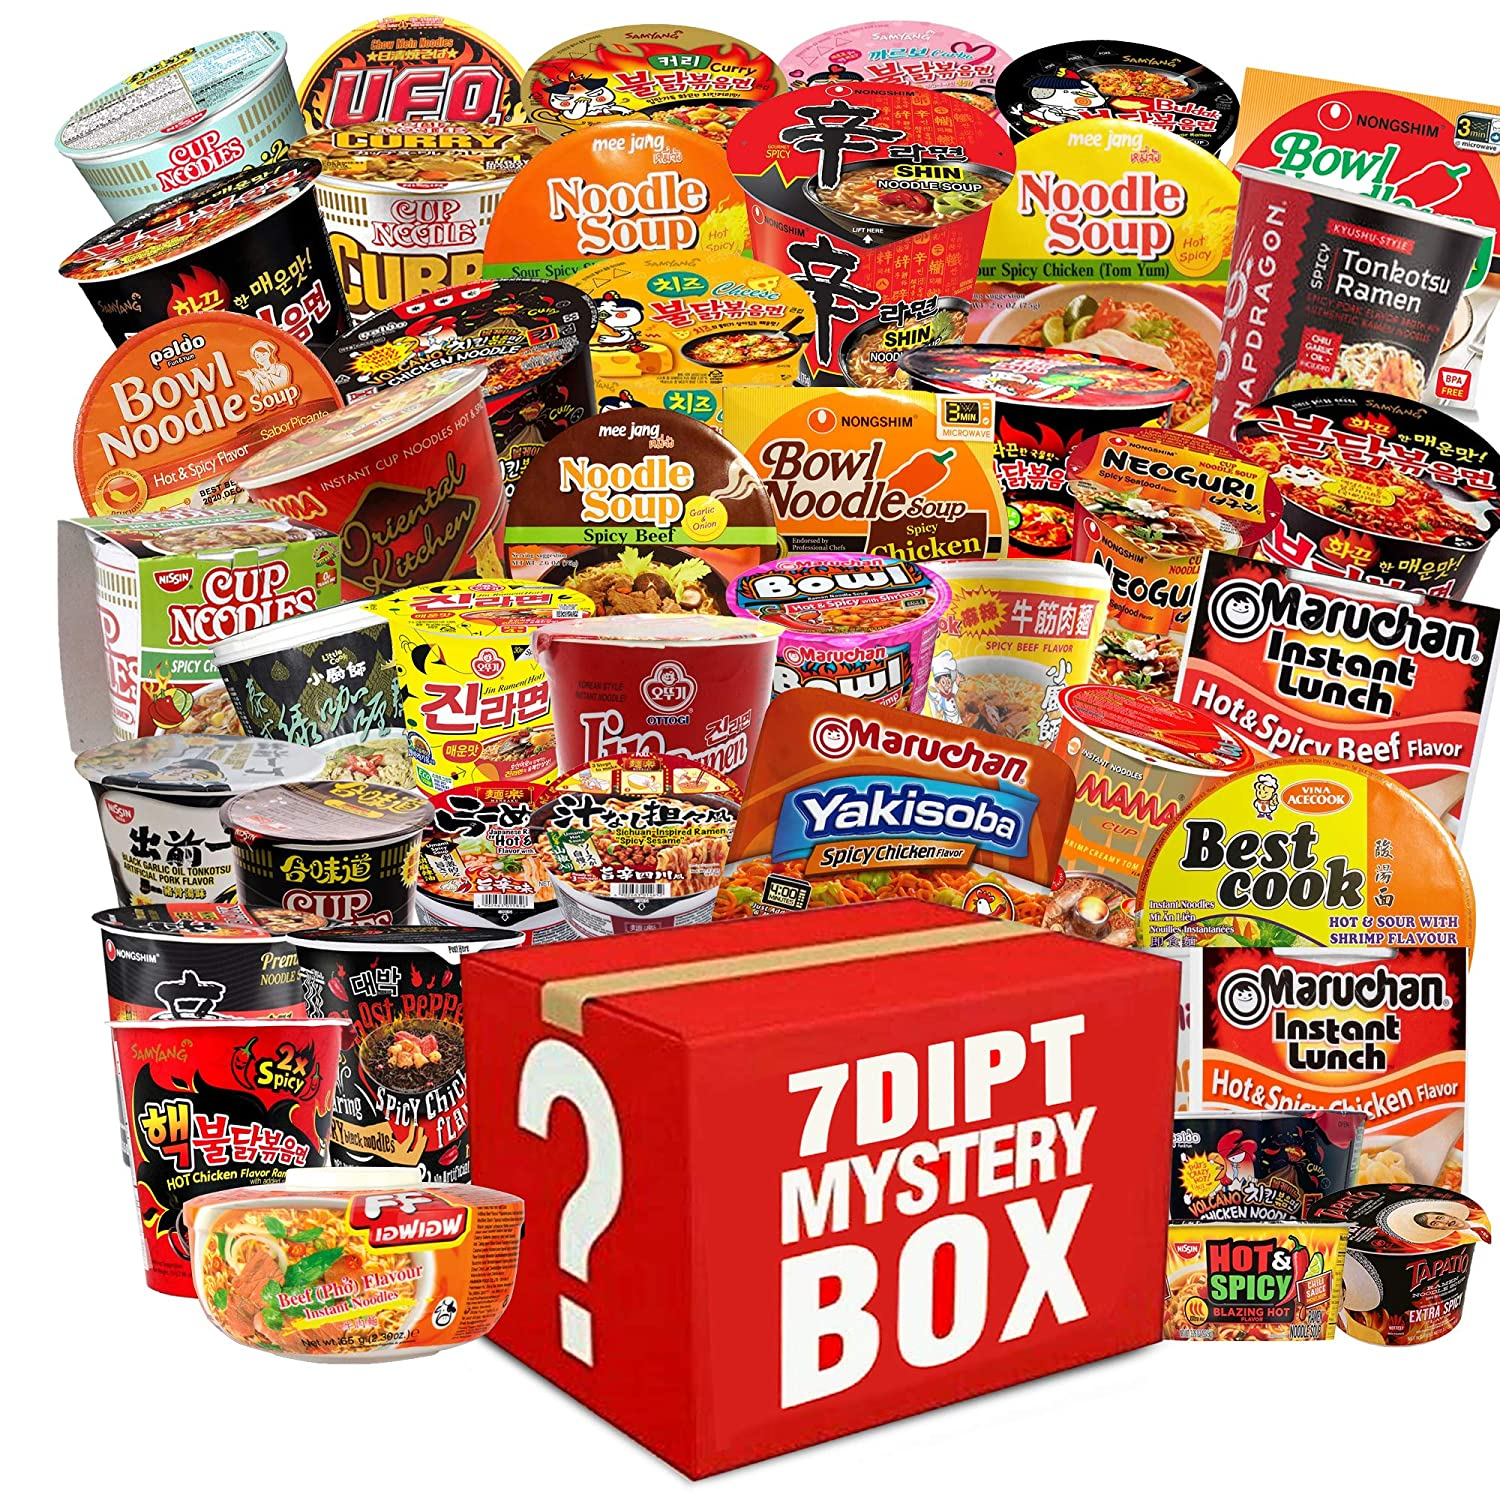 ????️ Mystery Hot and Spicy Asian Instant Ramen Variety Bundle, Cups & Bowls, Including - Nissin, Nongshim, Samyang, Mama, Acecook, Tapatio, Indomie, Daebak etc. (10 Pack Assorted) with Complementary 4 Piece Hi-Chews